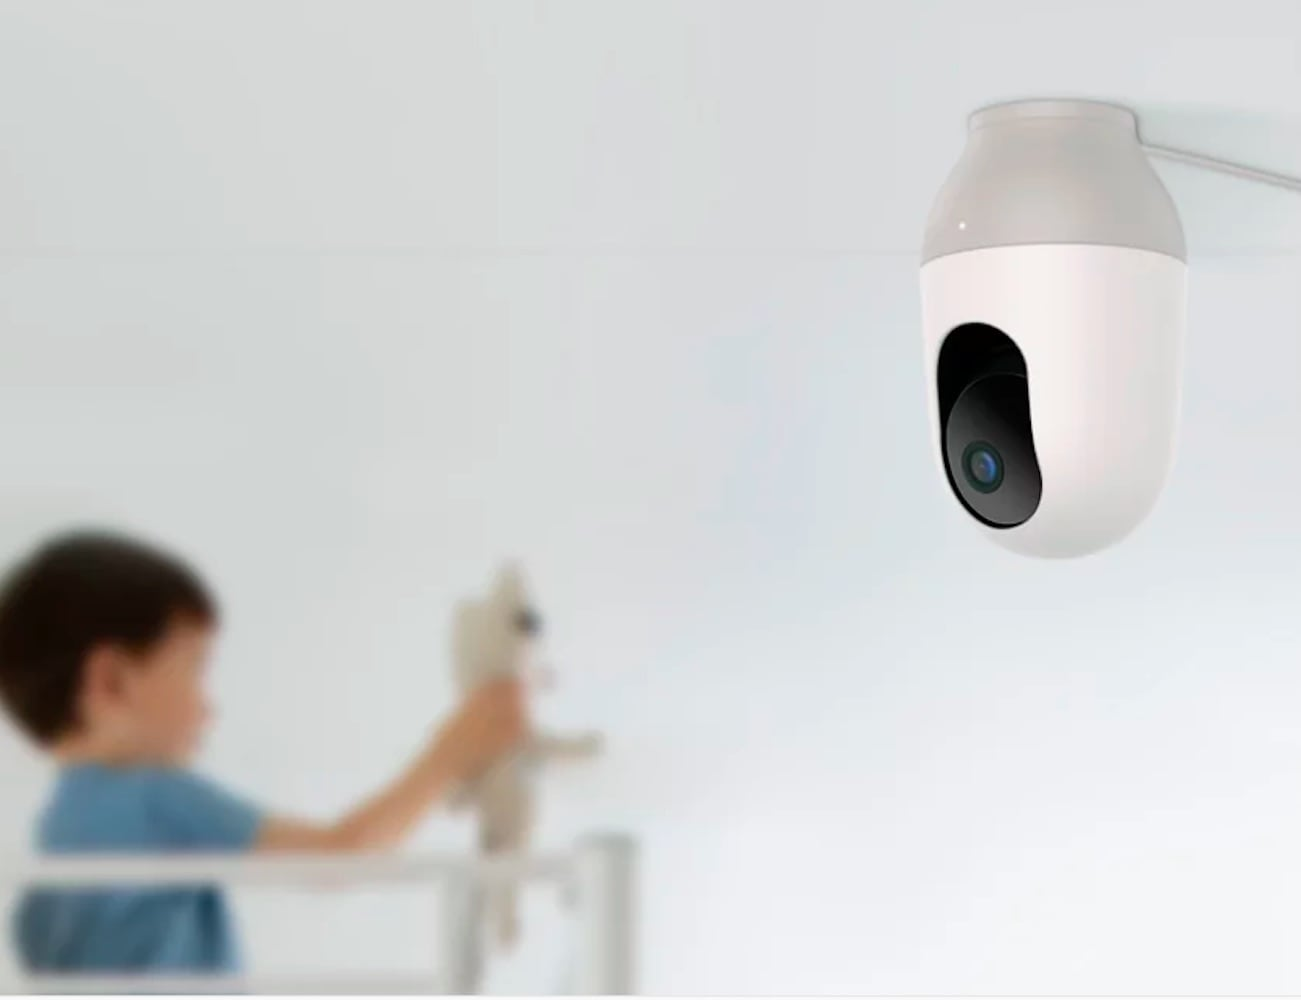 Nooie Cam 360 Motion-Tracking Camera provides 360° coverage